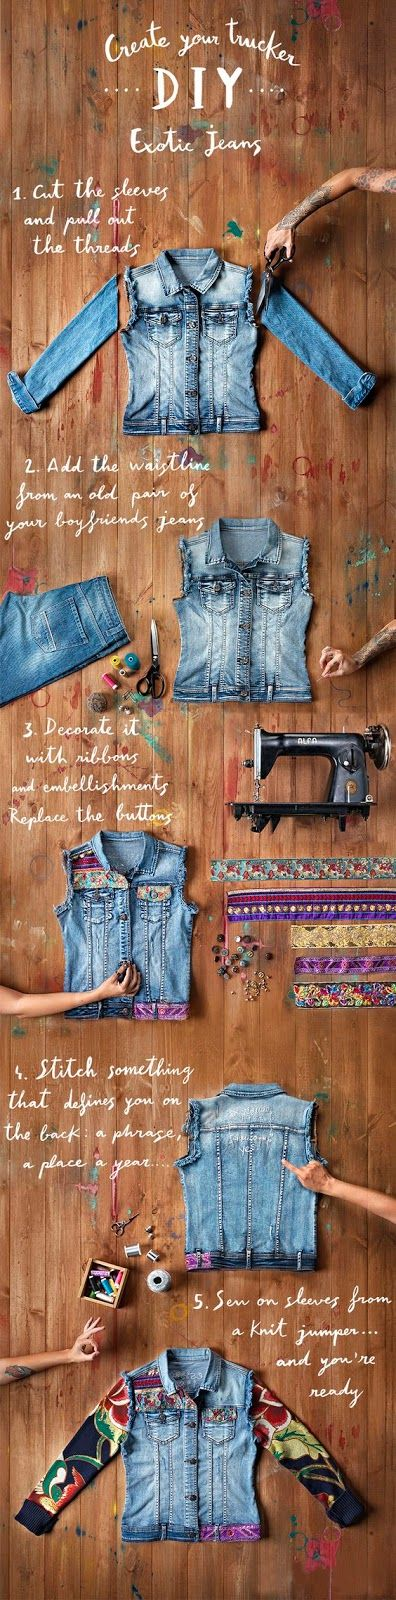 TACHUELAS DIY & CO: Customiza tu ropa DIY con EXOTIC JEANS de Desigual